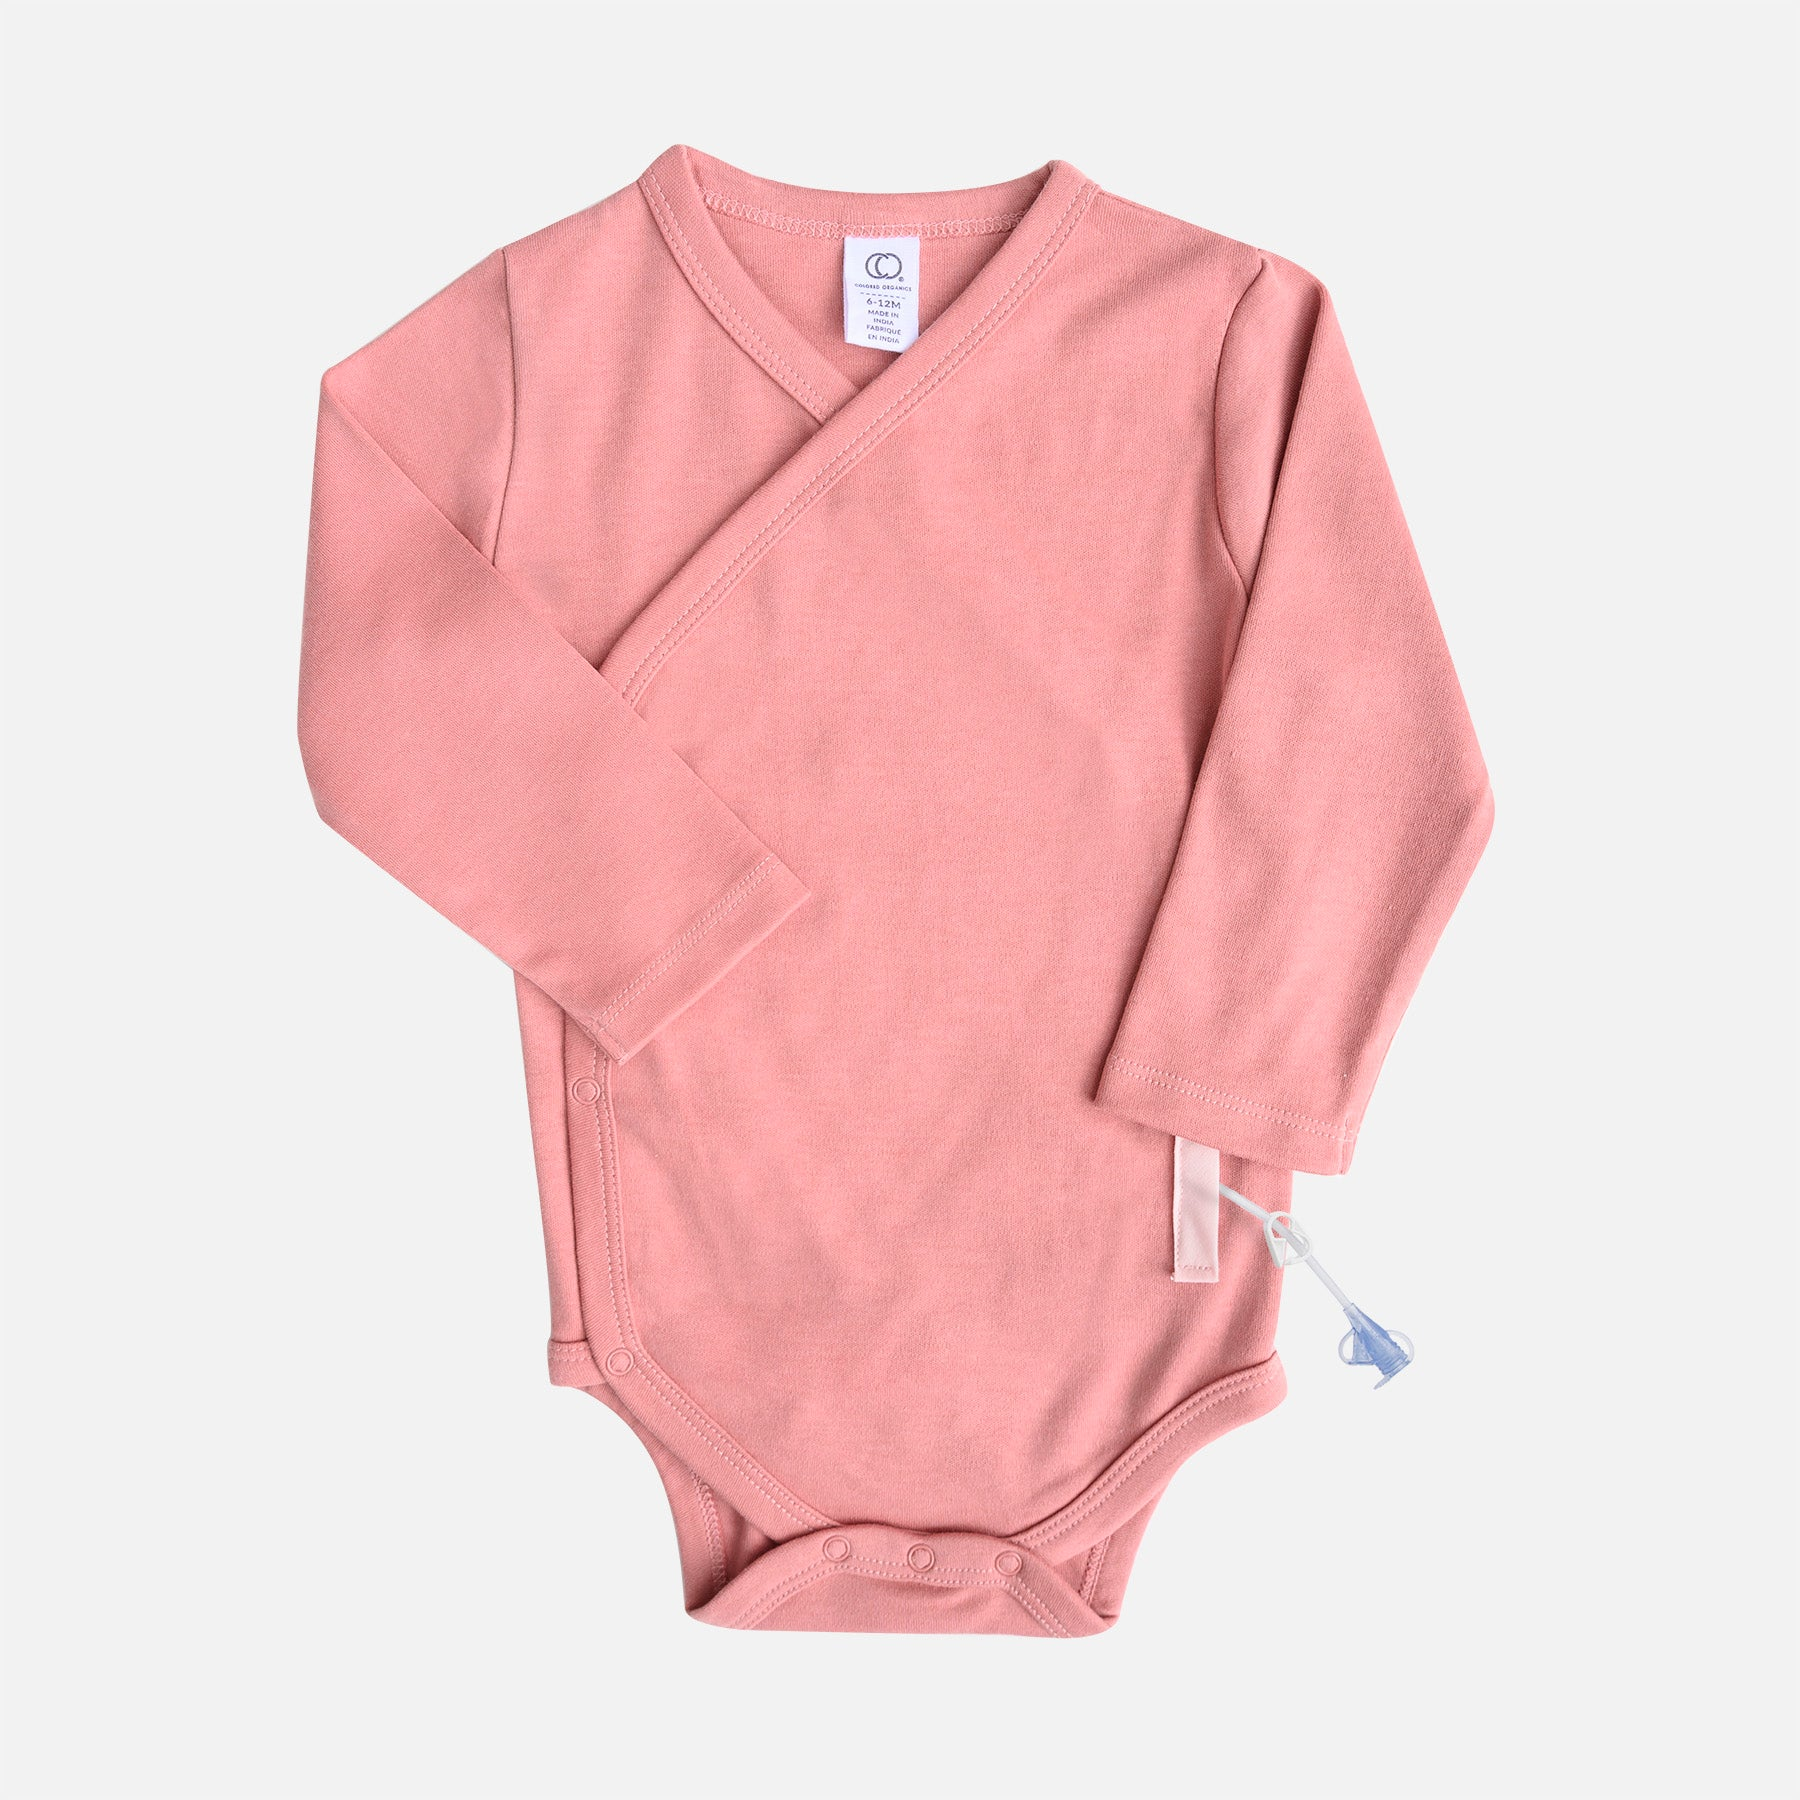 Dark pink infant kimono wrap style bodysuit, with adaptive openings in the sides for feeding tube access